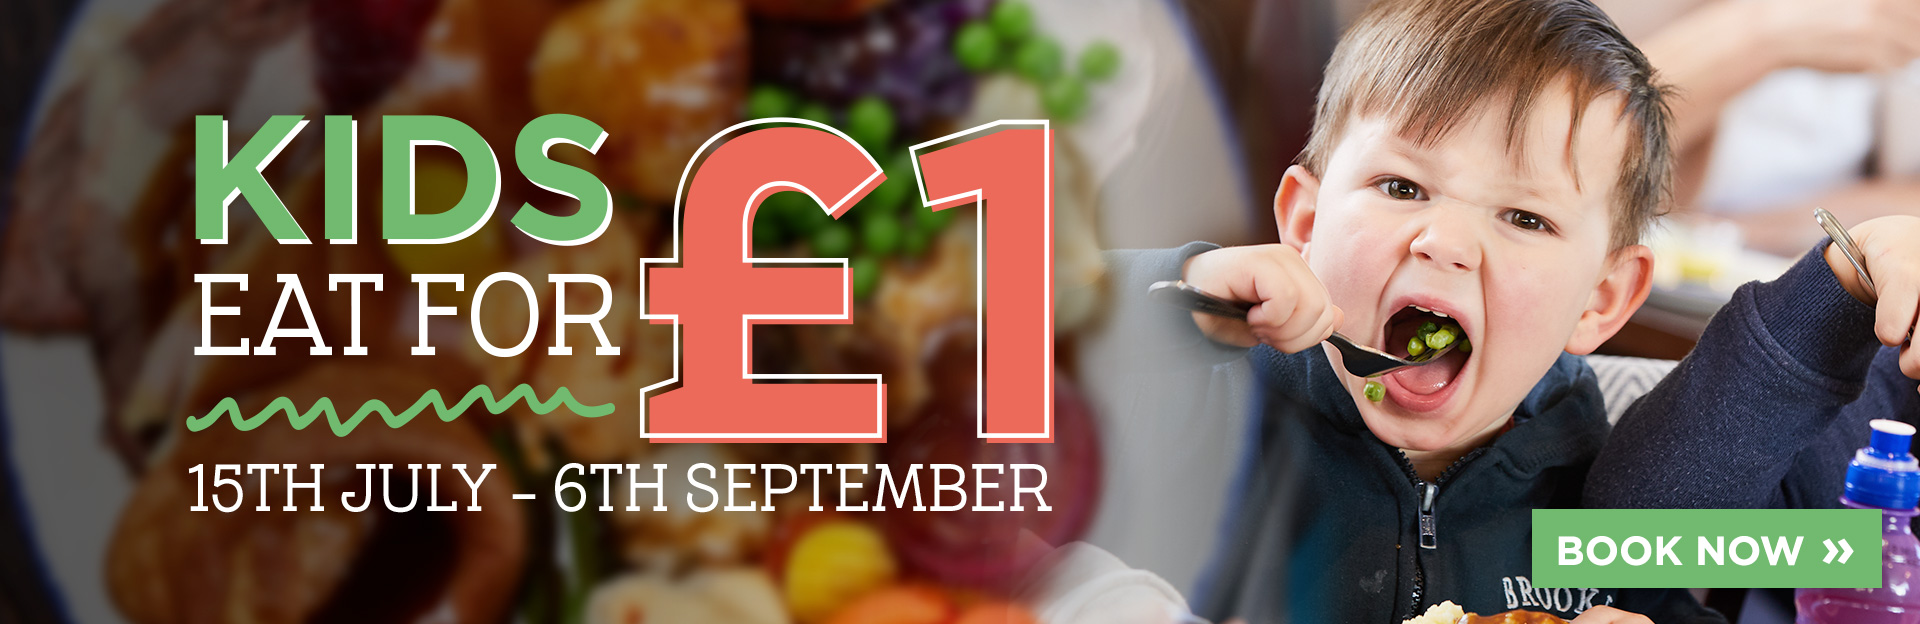 Kids eat for £1 at The Barley Mow